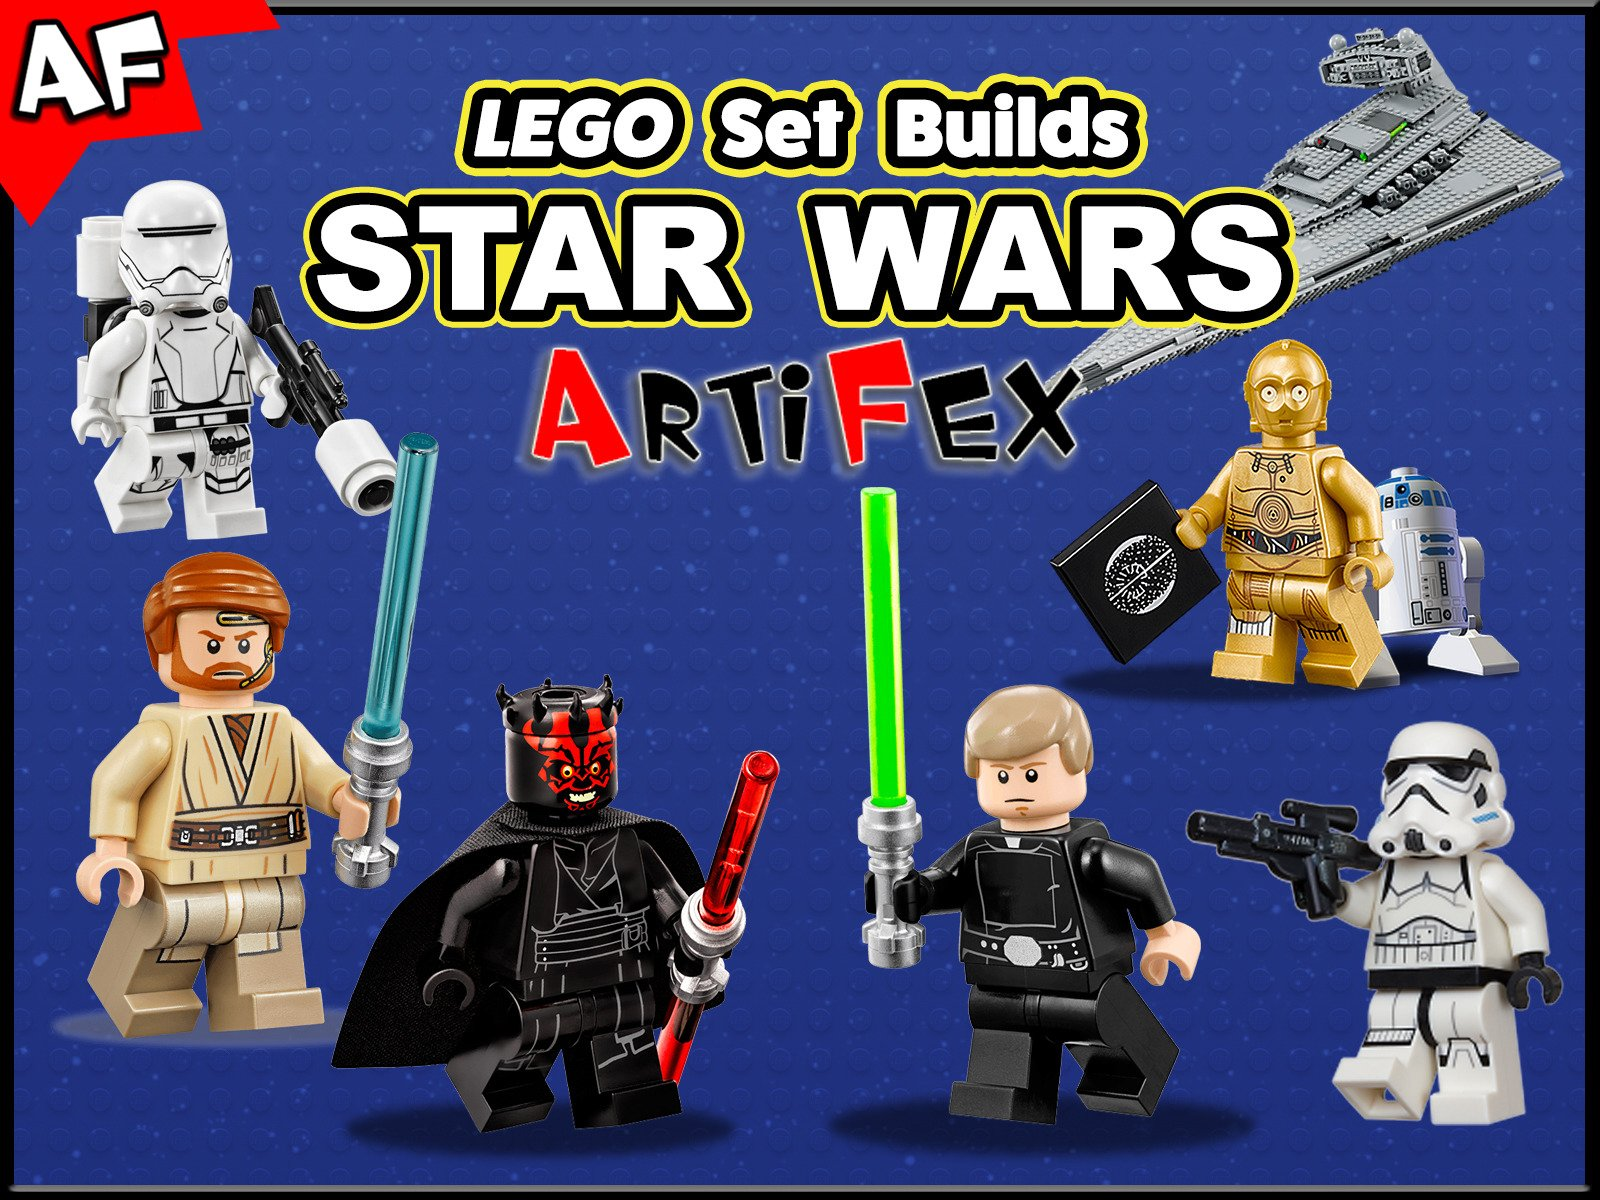 Clip: Lego Set Builds Star Wars - Season 4